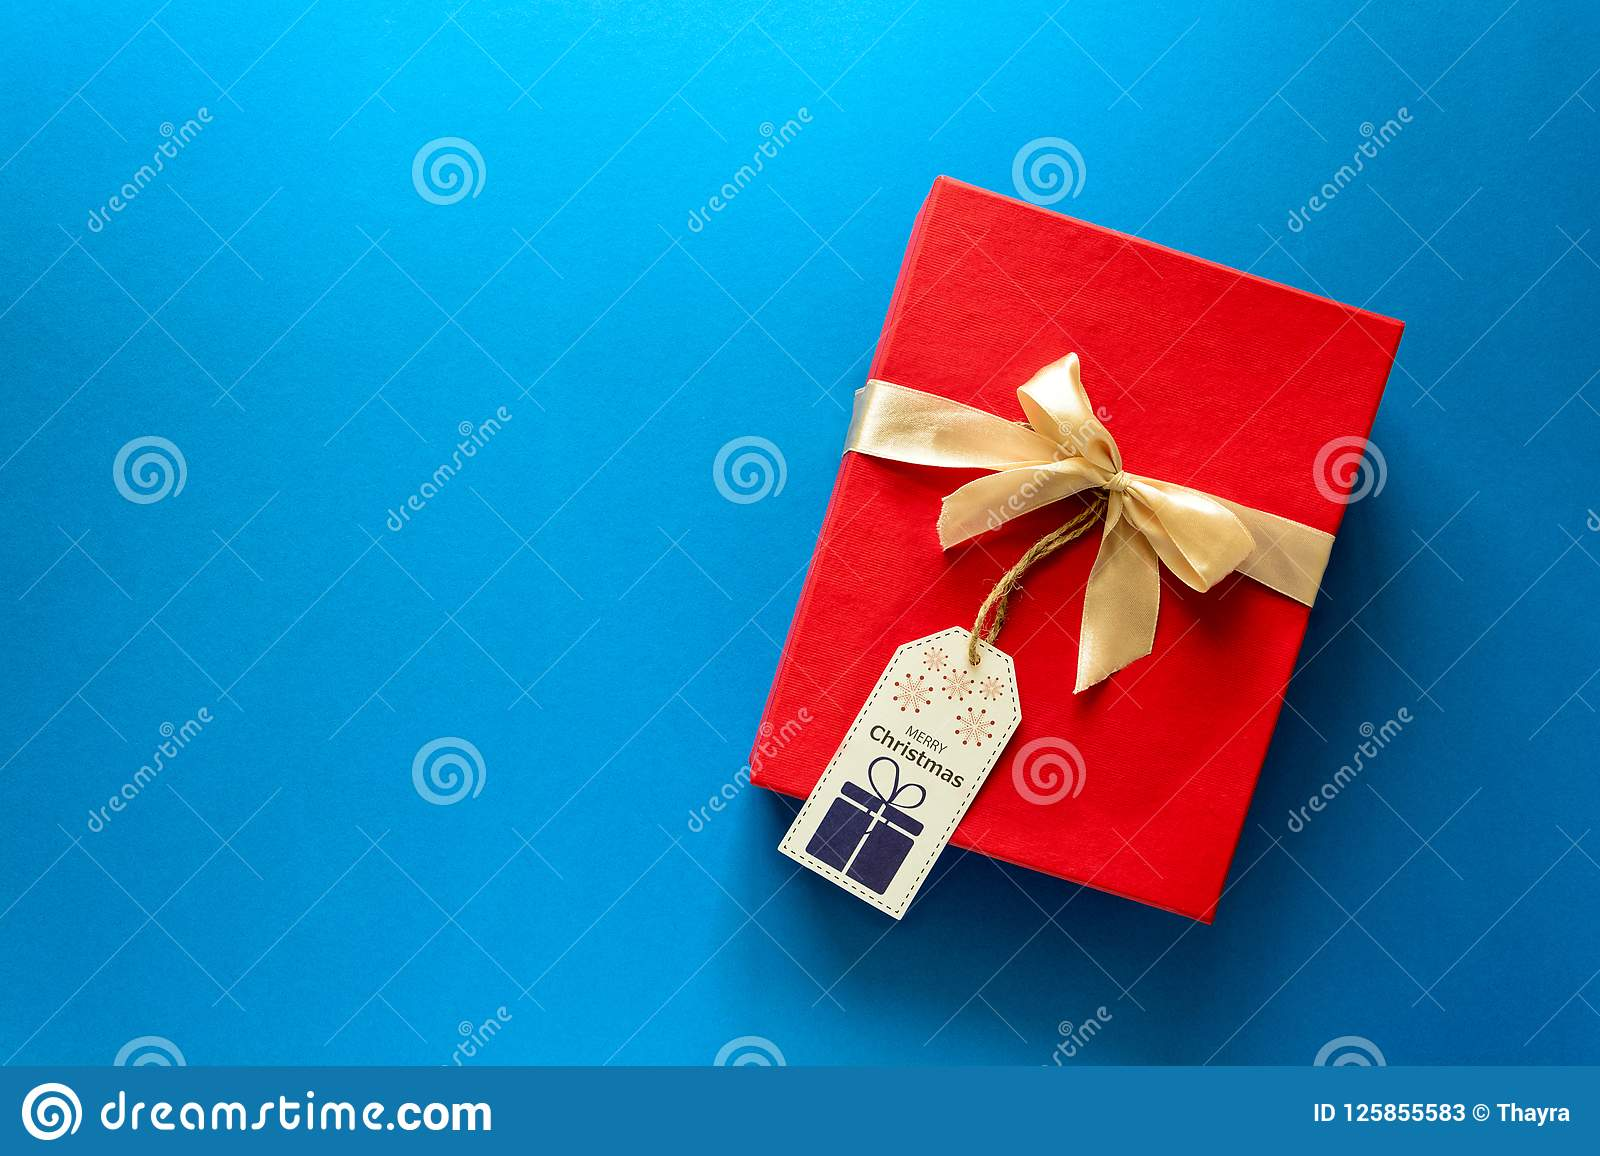 Top view on red Christmas gift box decorated with ribbon on blue paper background. New Year, holidays and celebration decorations